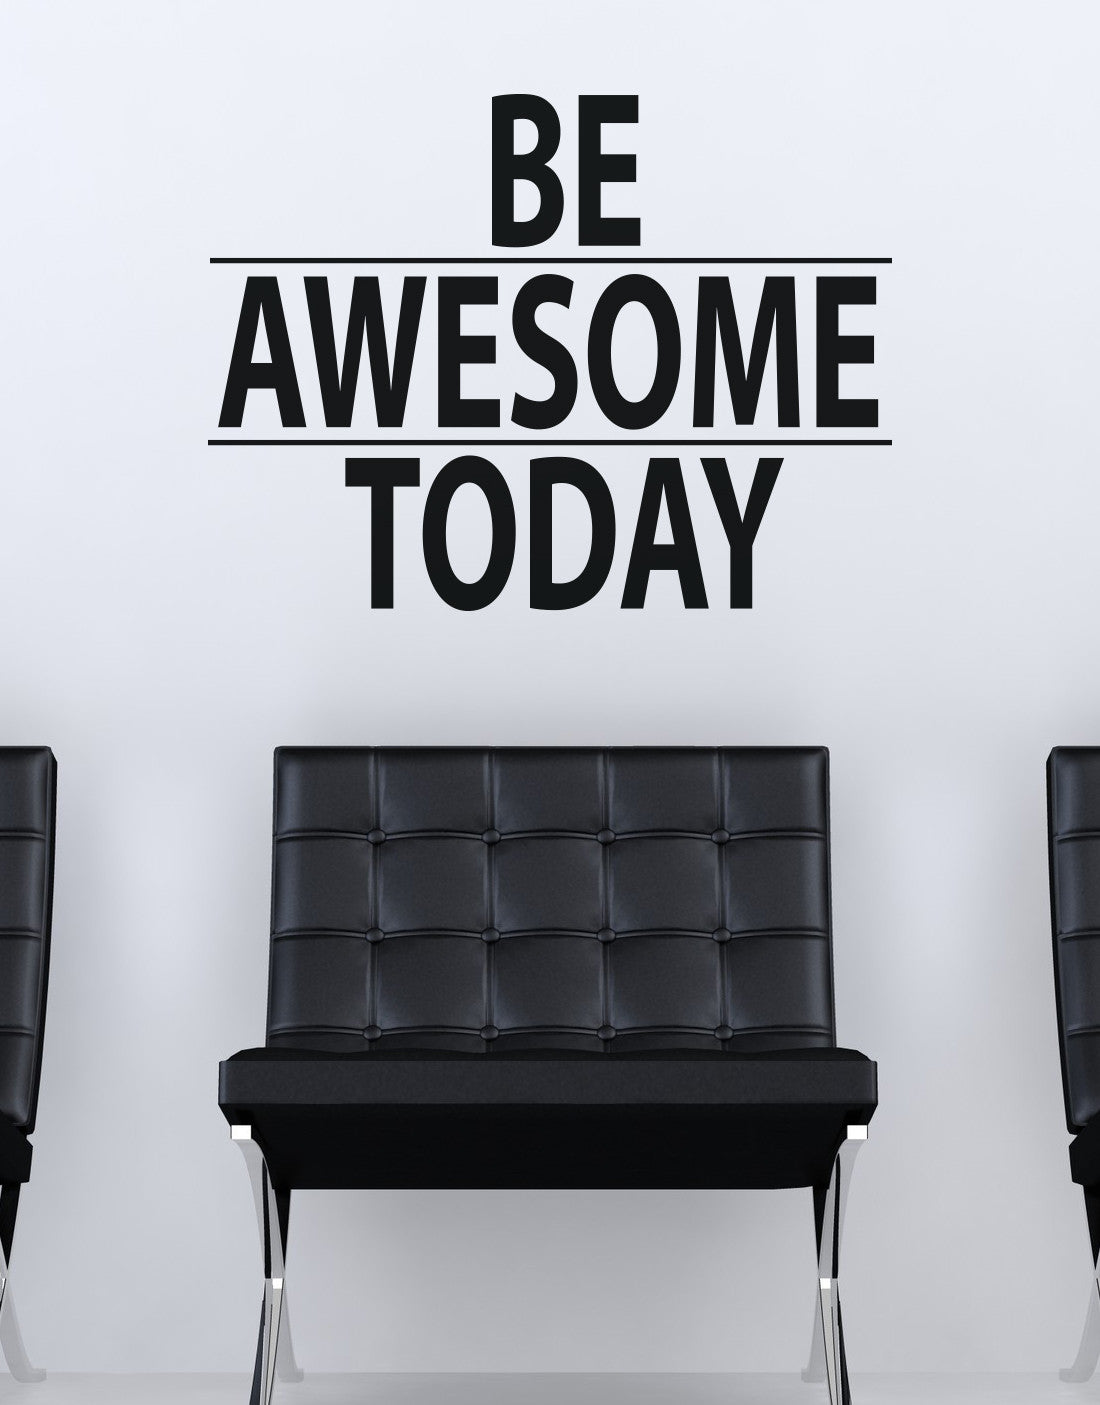 Be Awesome Today Motivational Quote Wall Decal Sticker #6013 & Inspirational Quotes Wall Decals | Inspirational Wall Stickers